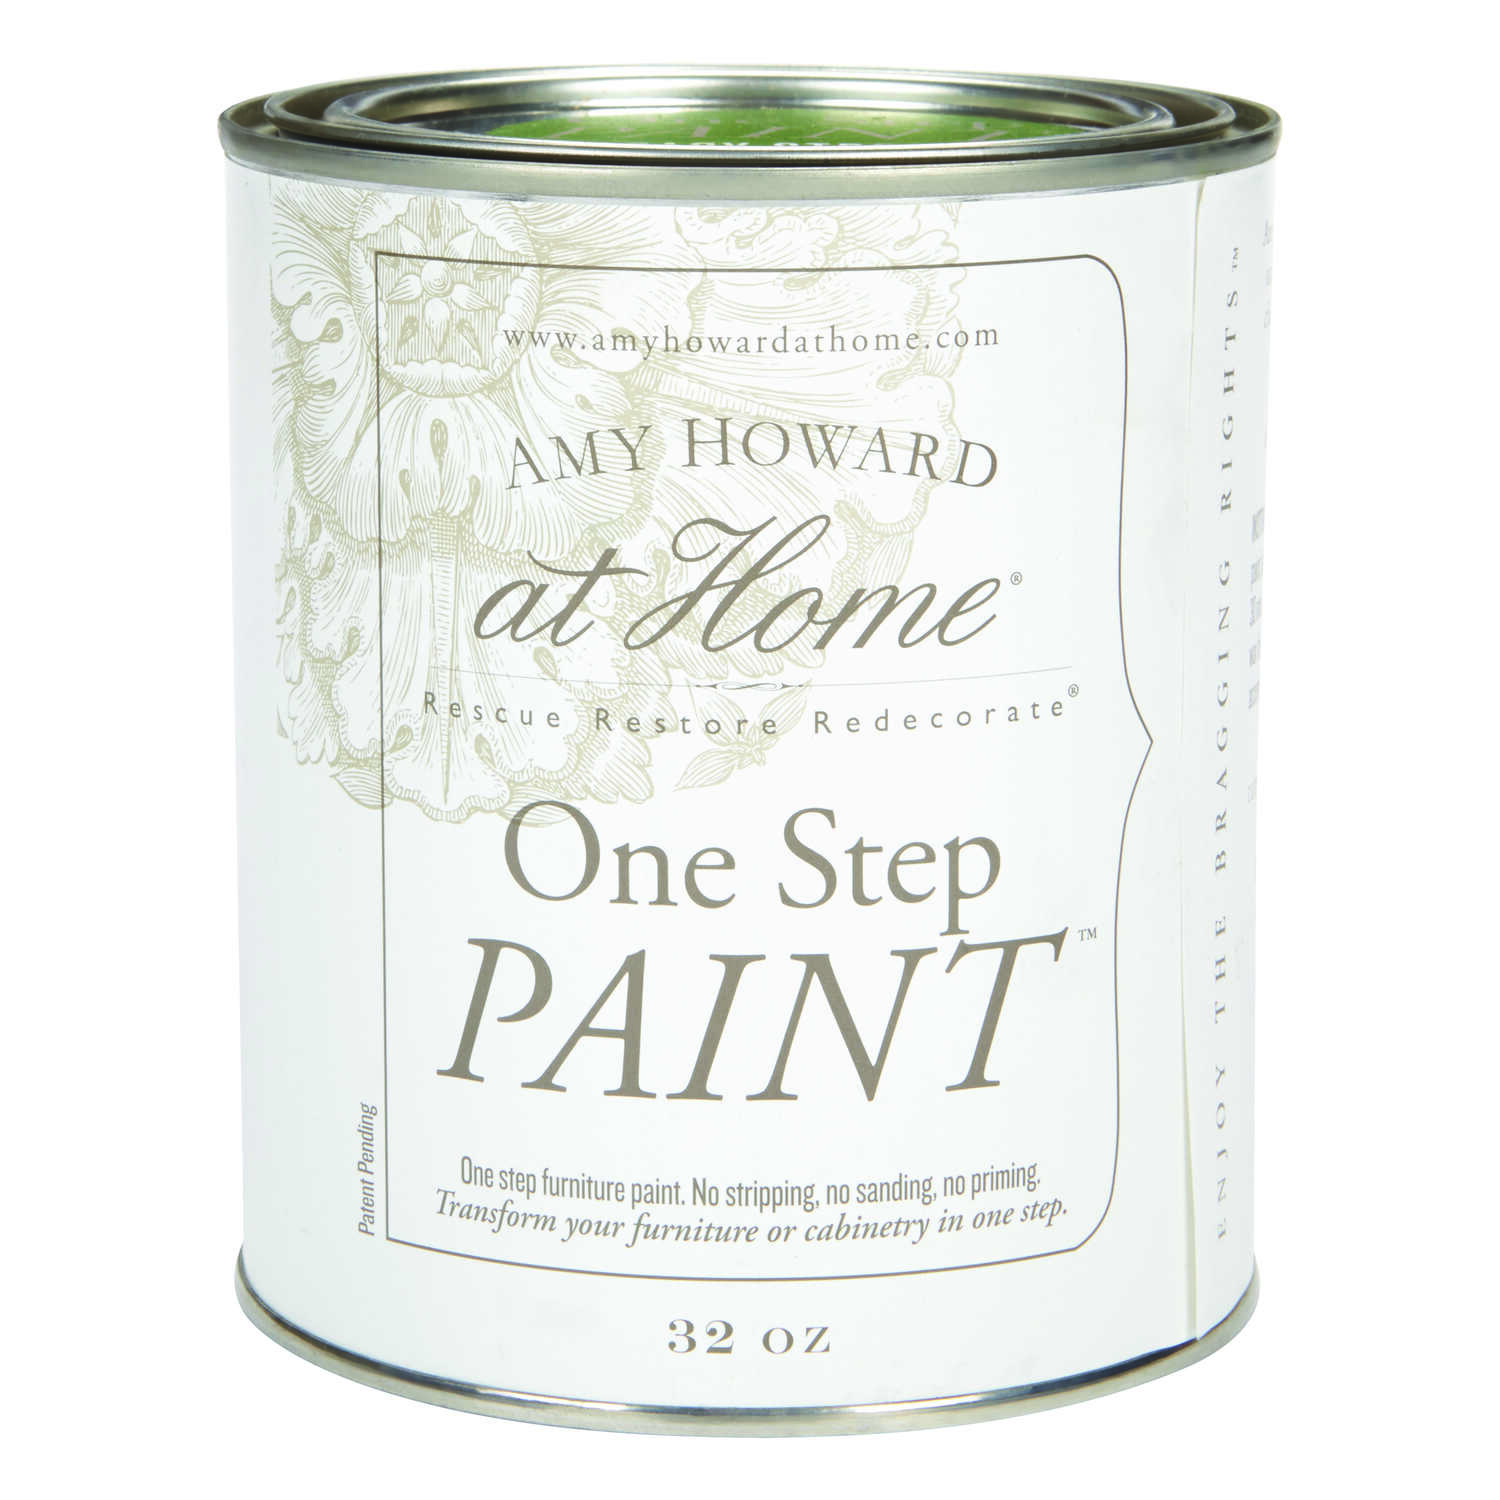 Amy Howard at Home  Easy Street  Latex  One Step Furniture Paint  32 oz.